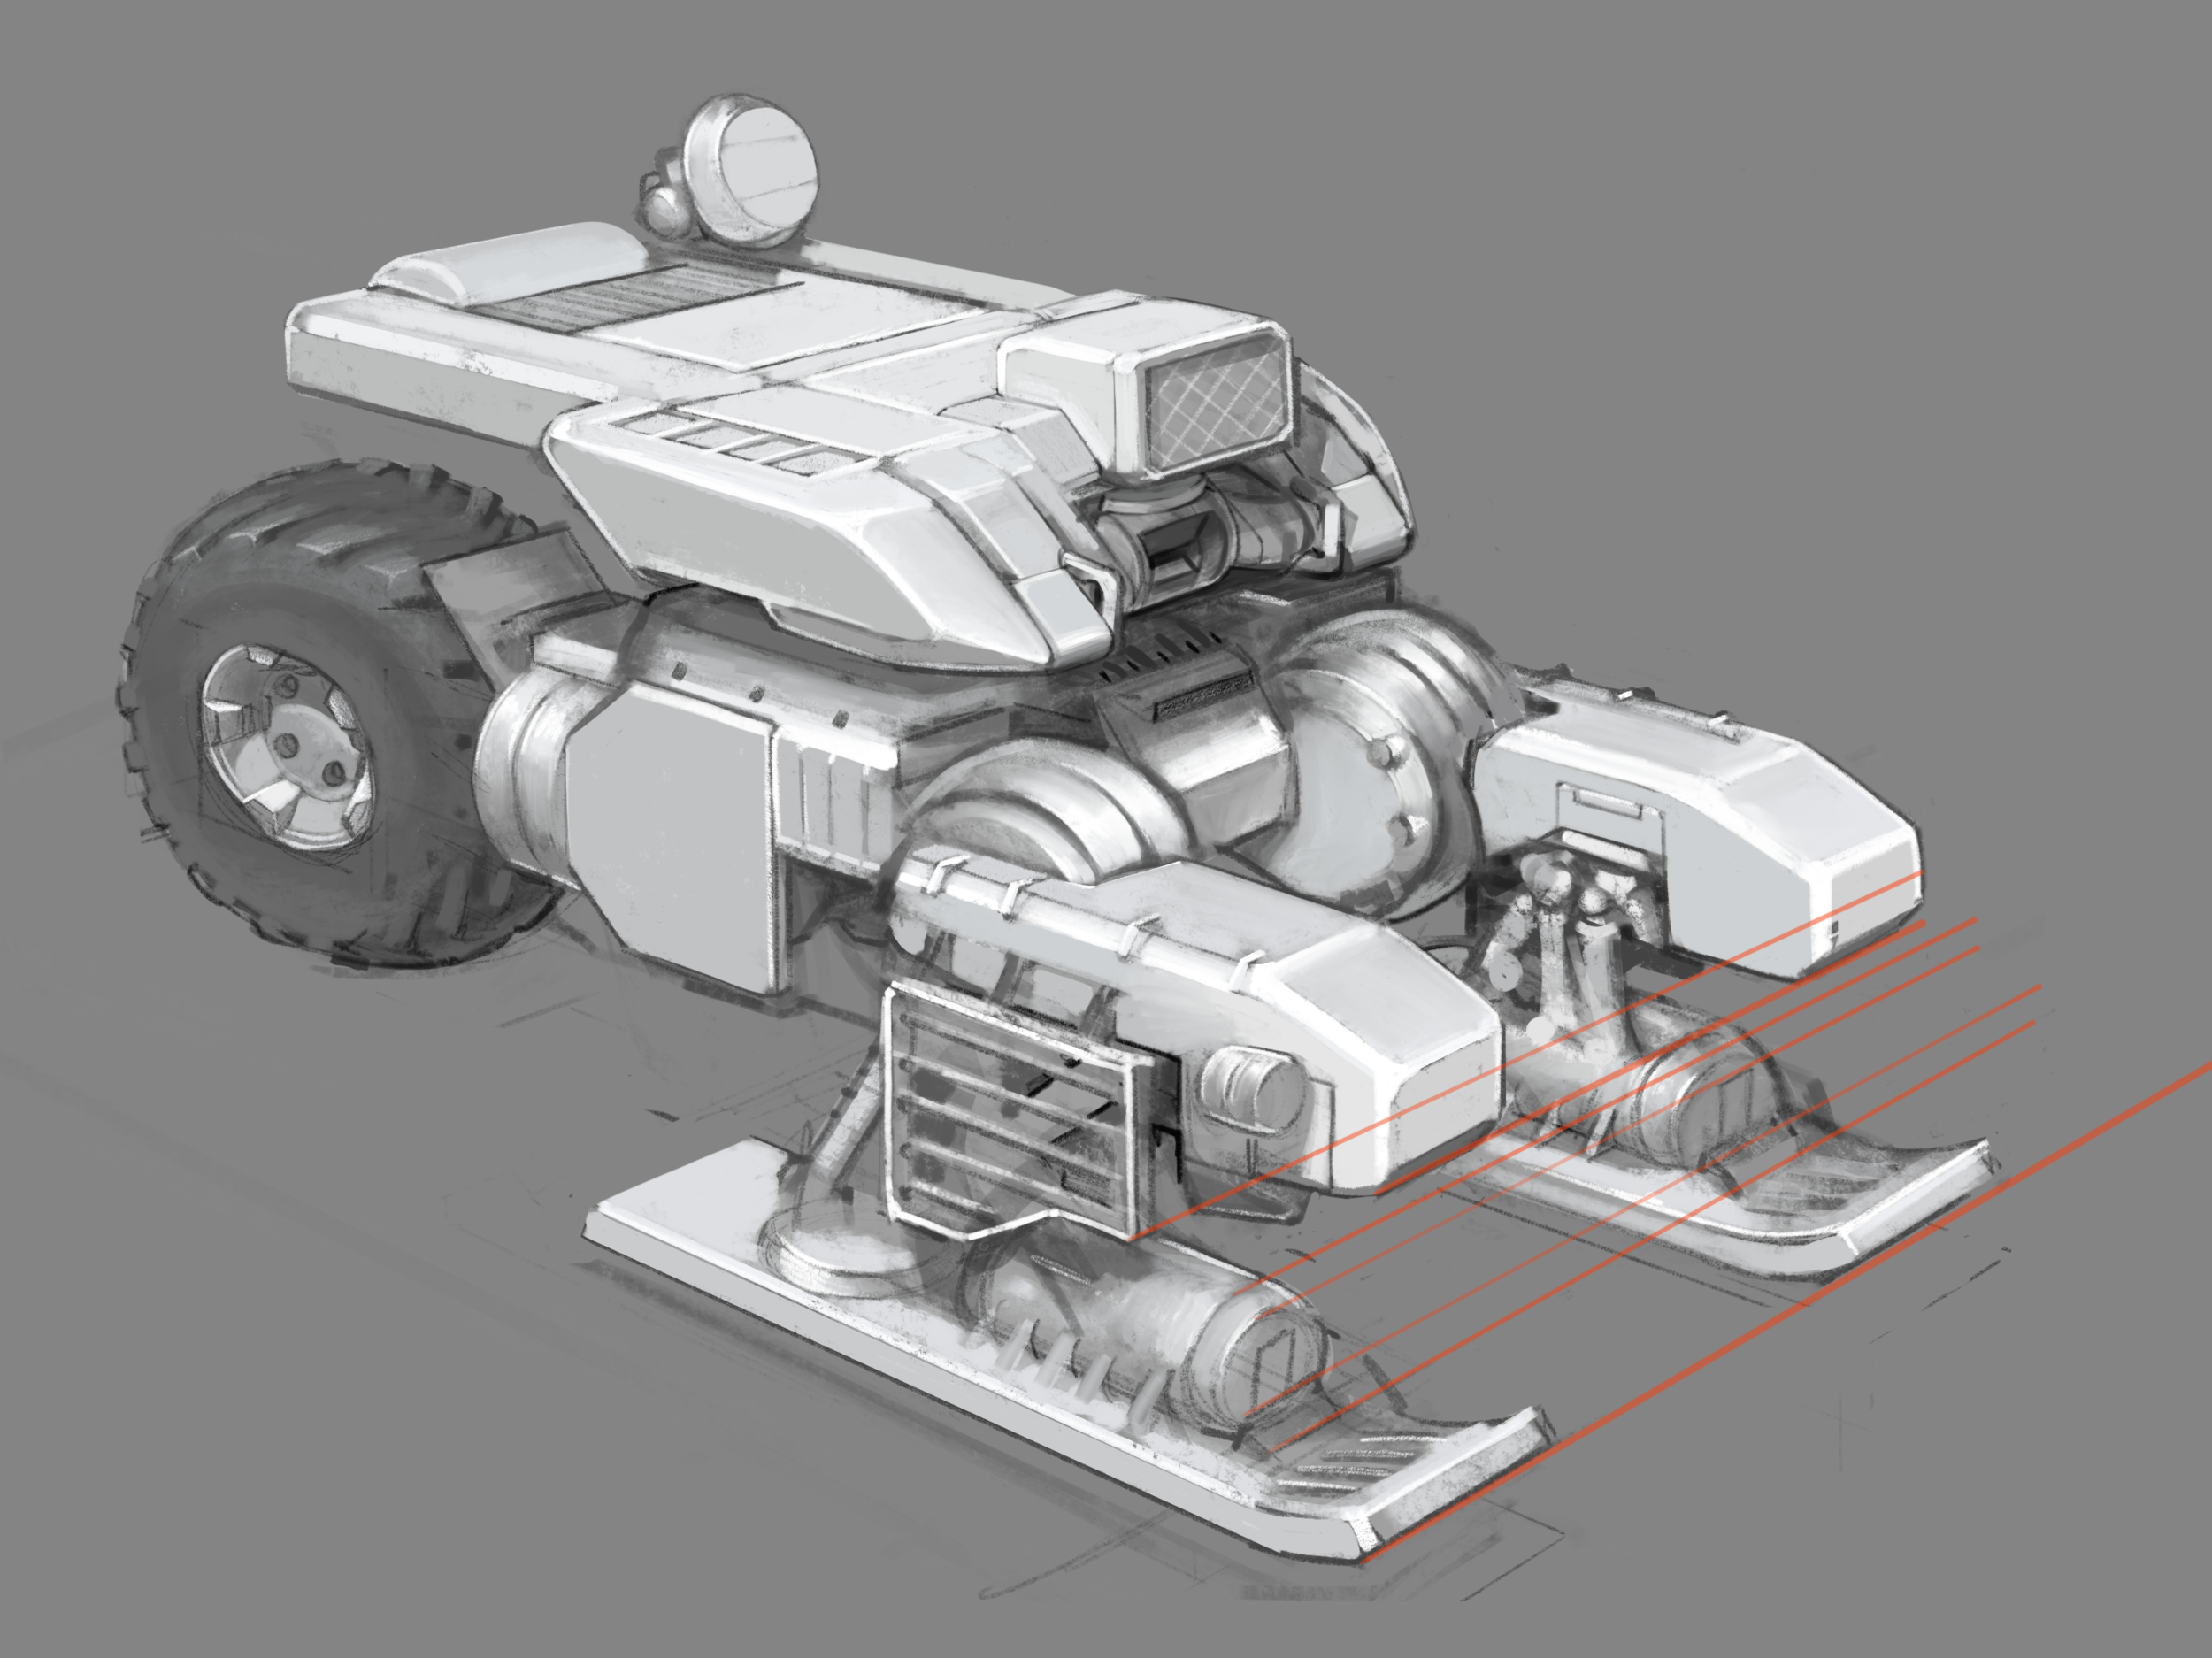 Finished up sketching a laser platform configured for road travel.